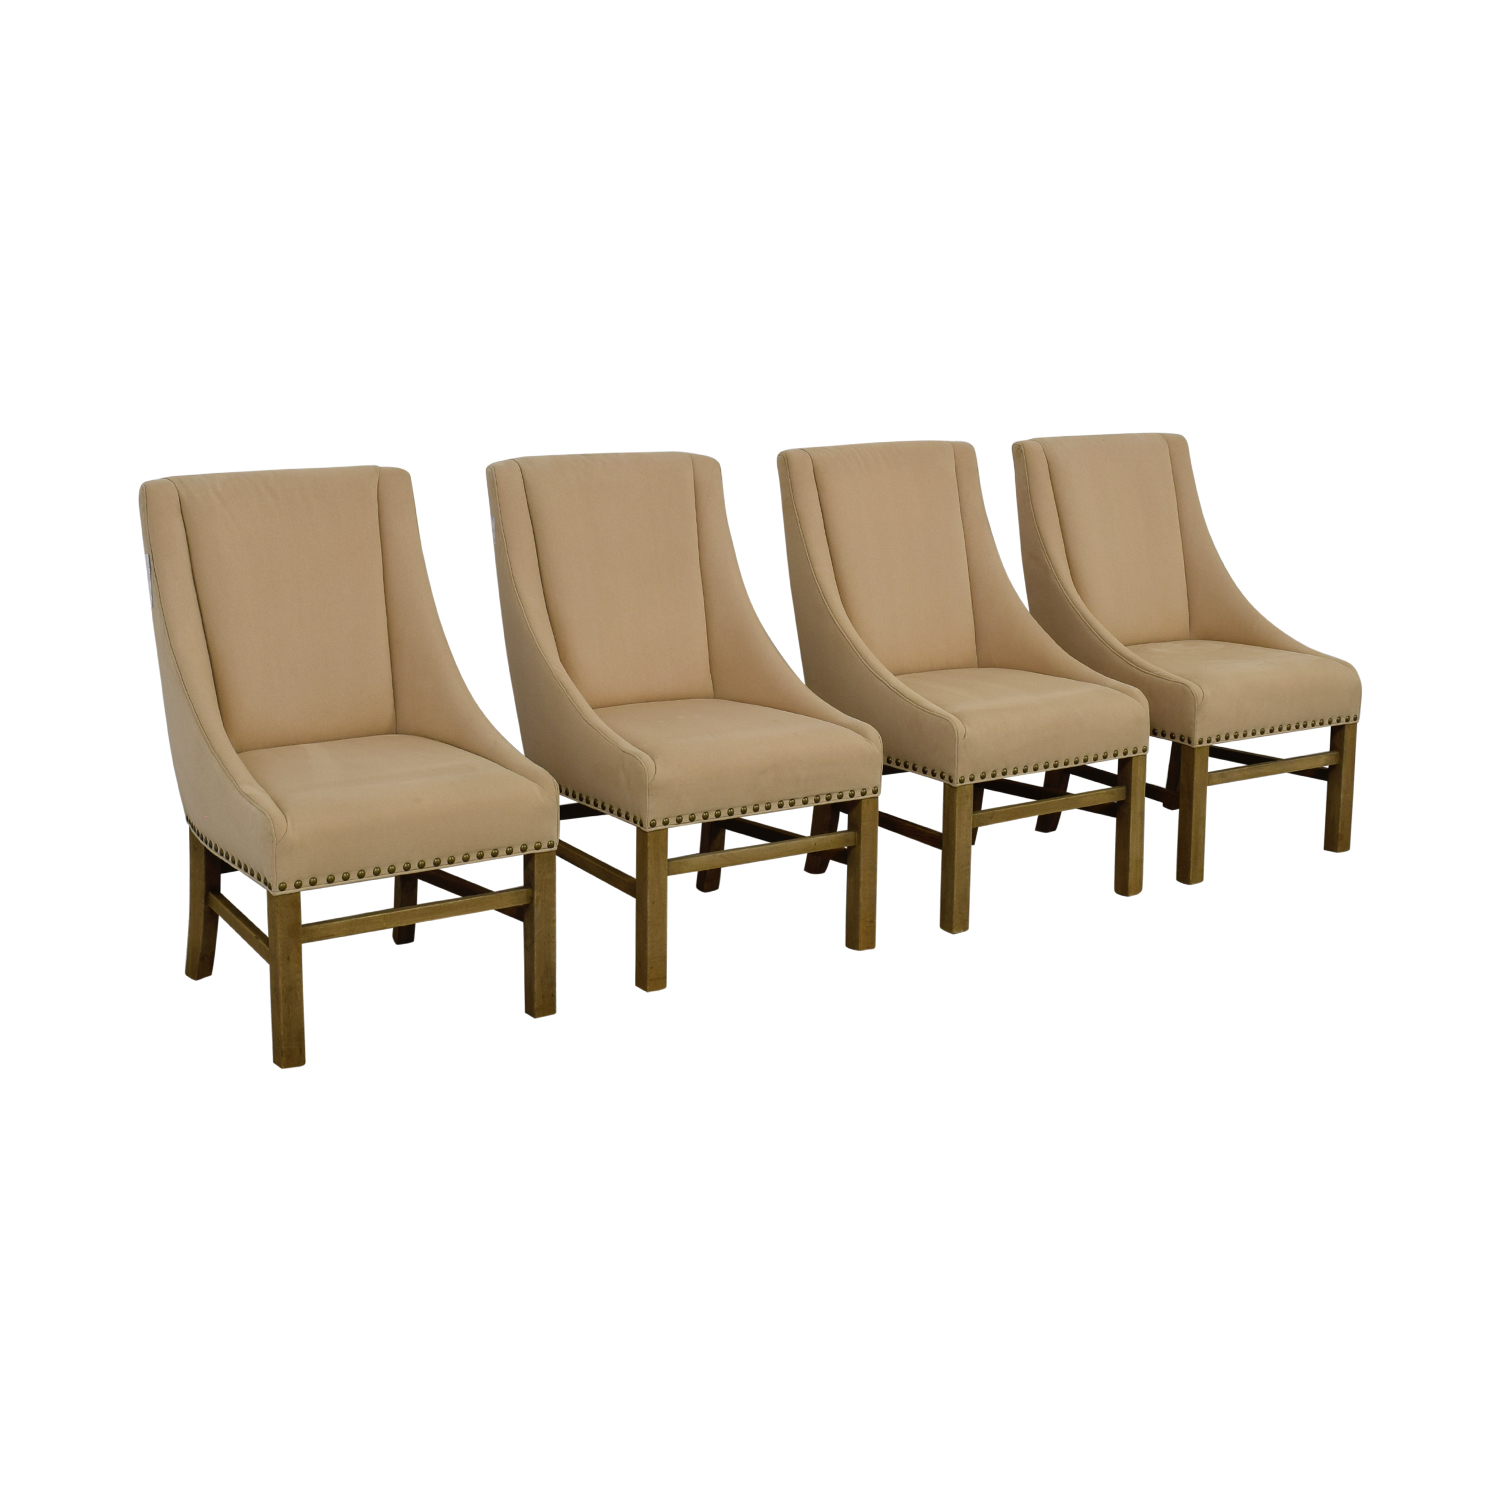 ... Restoration Hardware Restoration Hardware Beige Nailhead Dining Chairs  Coupon ...